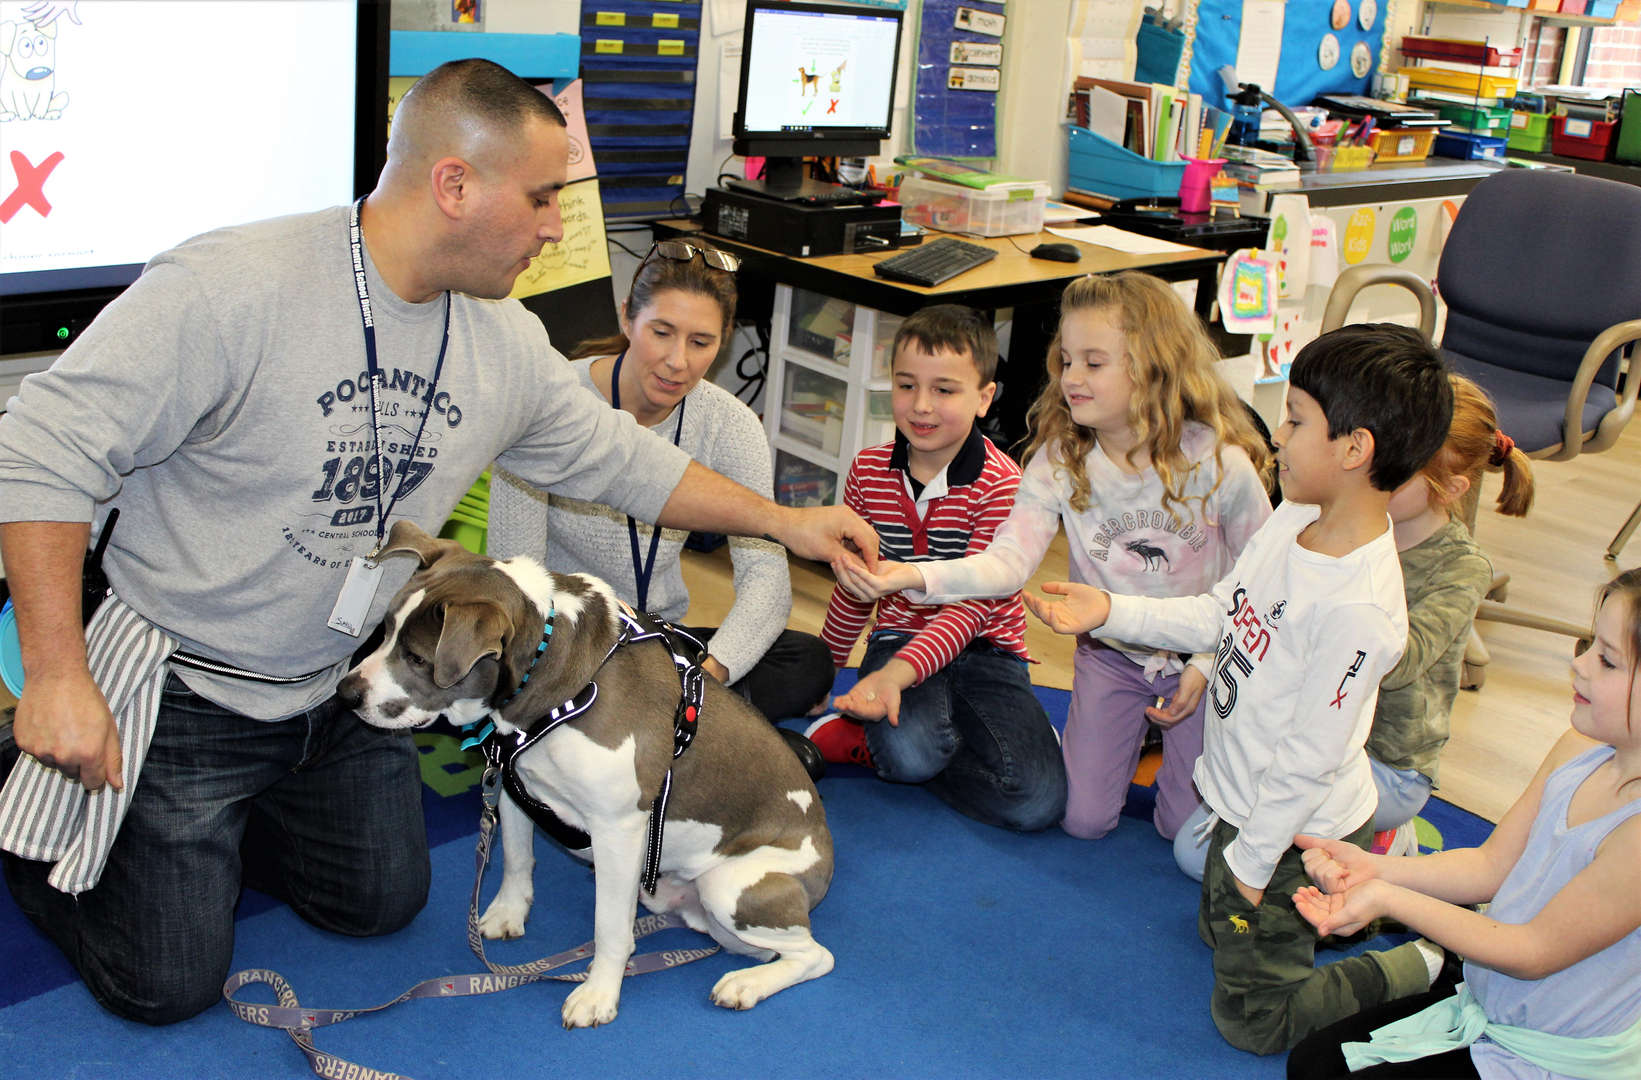 A teacher introduces a new therapy dog to first-graders.